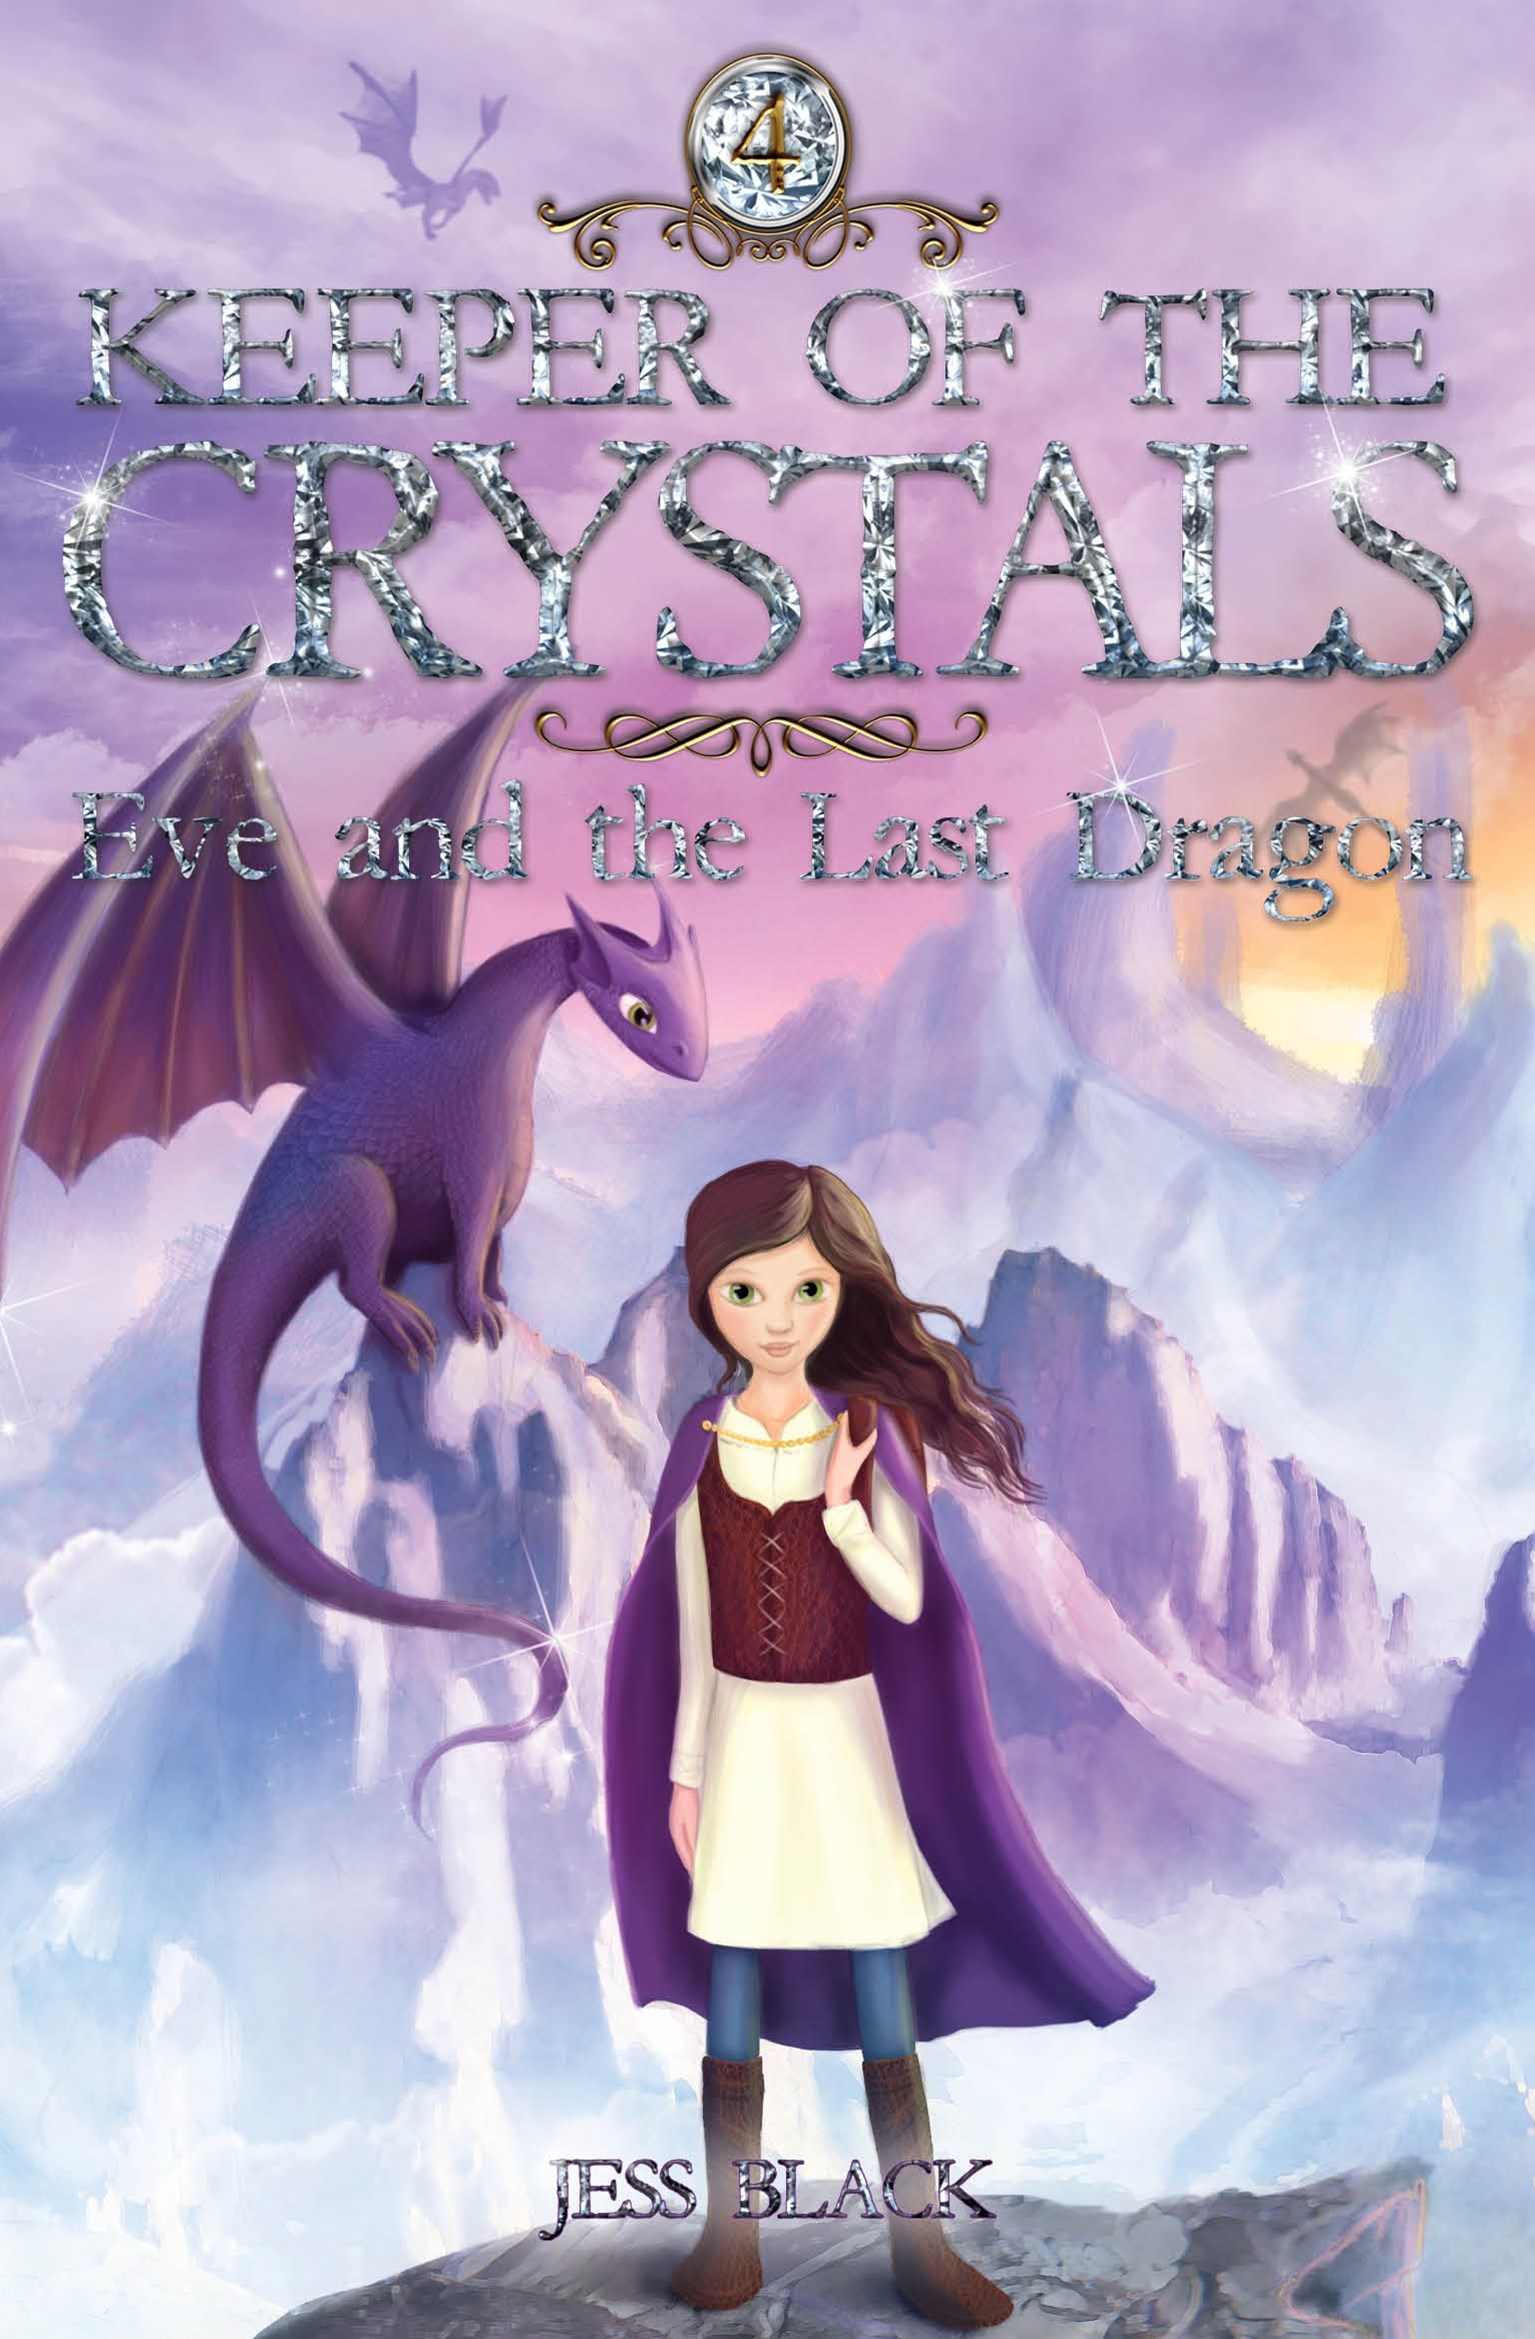 Keeper of the Crystals: #4 Eve and the Last Dragon